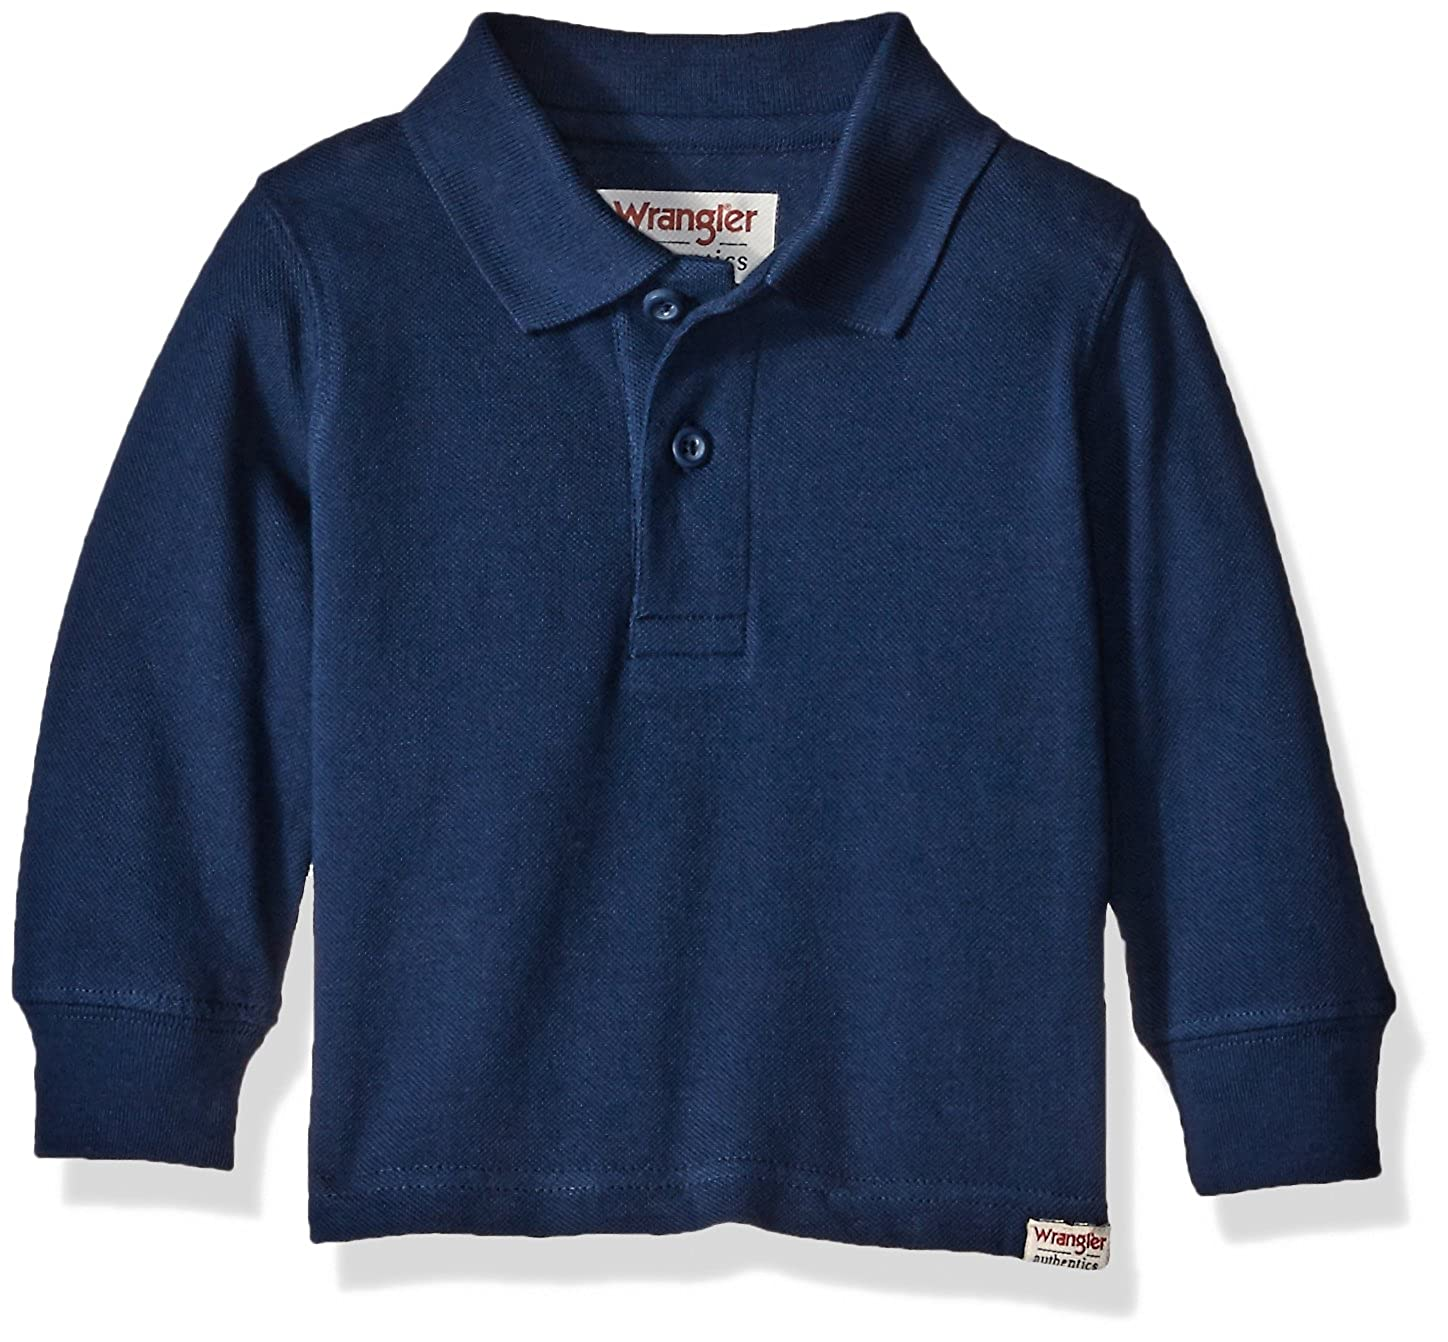 Wrangler Authentics Infant & Toddler Baby Boys' Long Sleeve Knit Polo ZI0LP